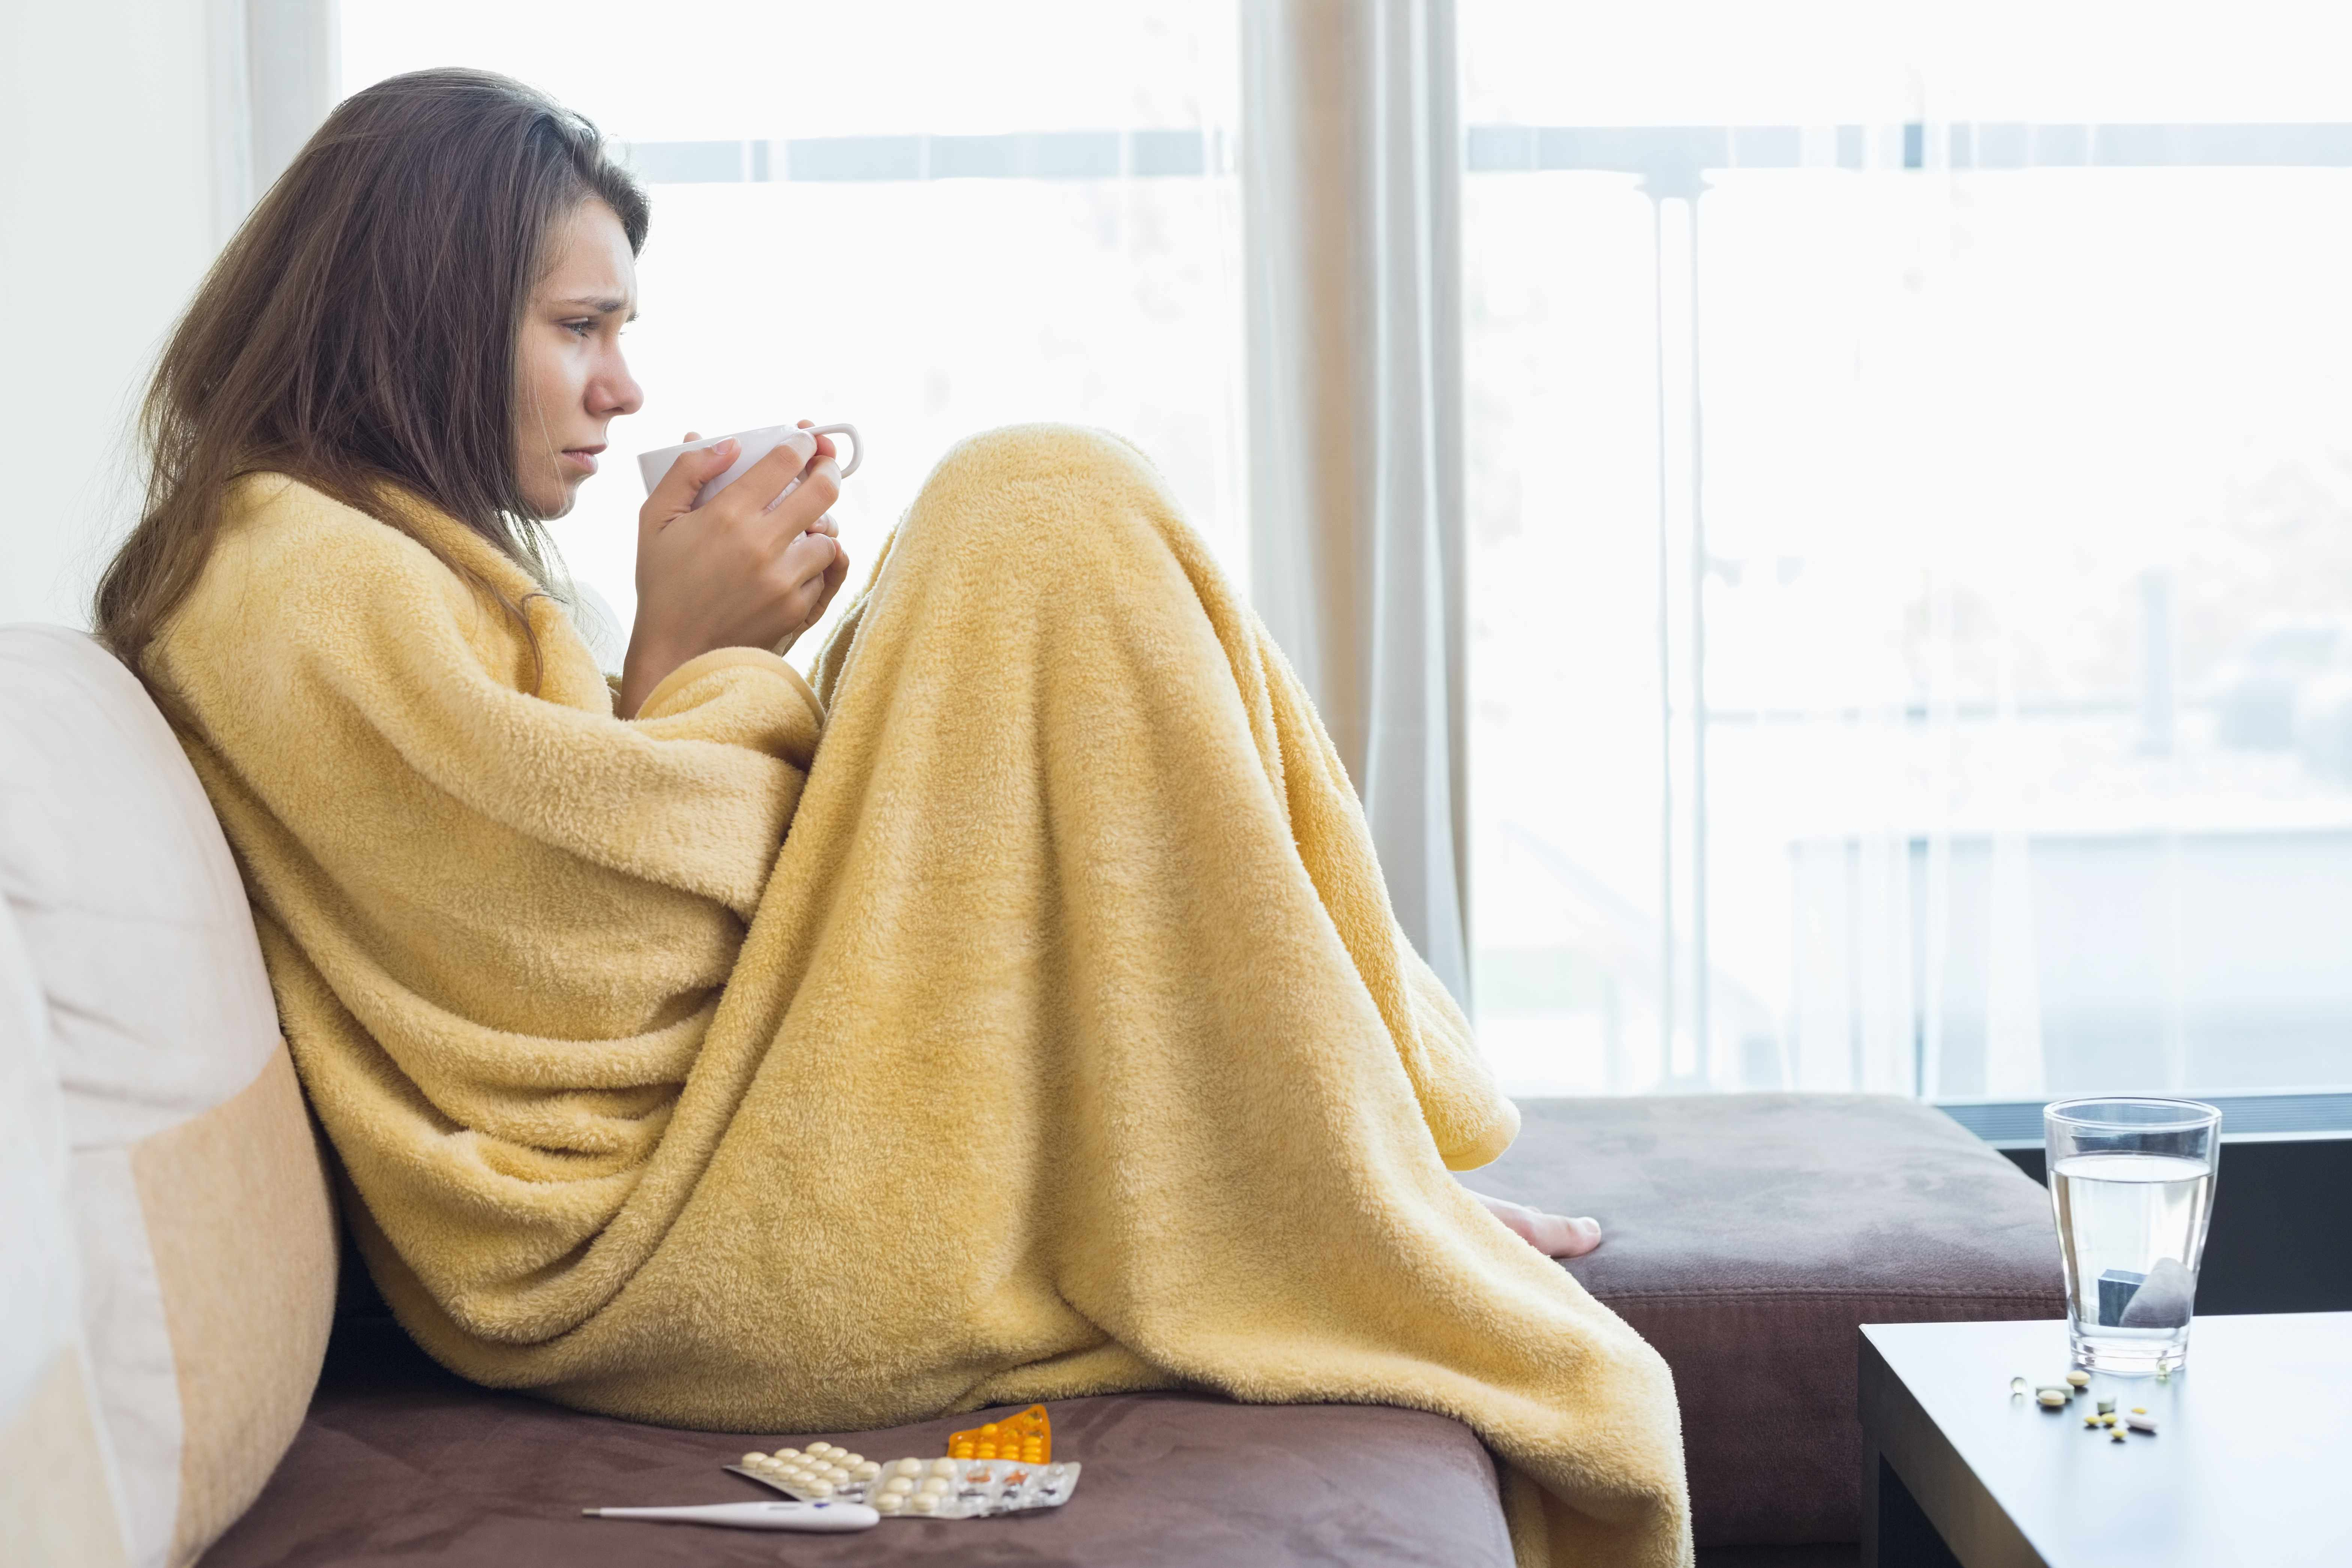 sick woman with flu or cold wrapped in a blanket drinking tea